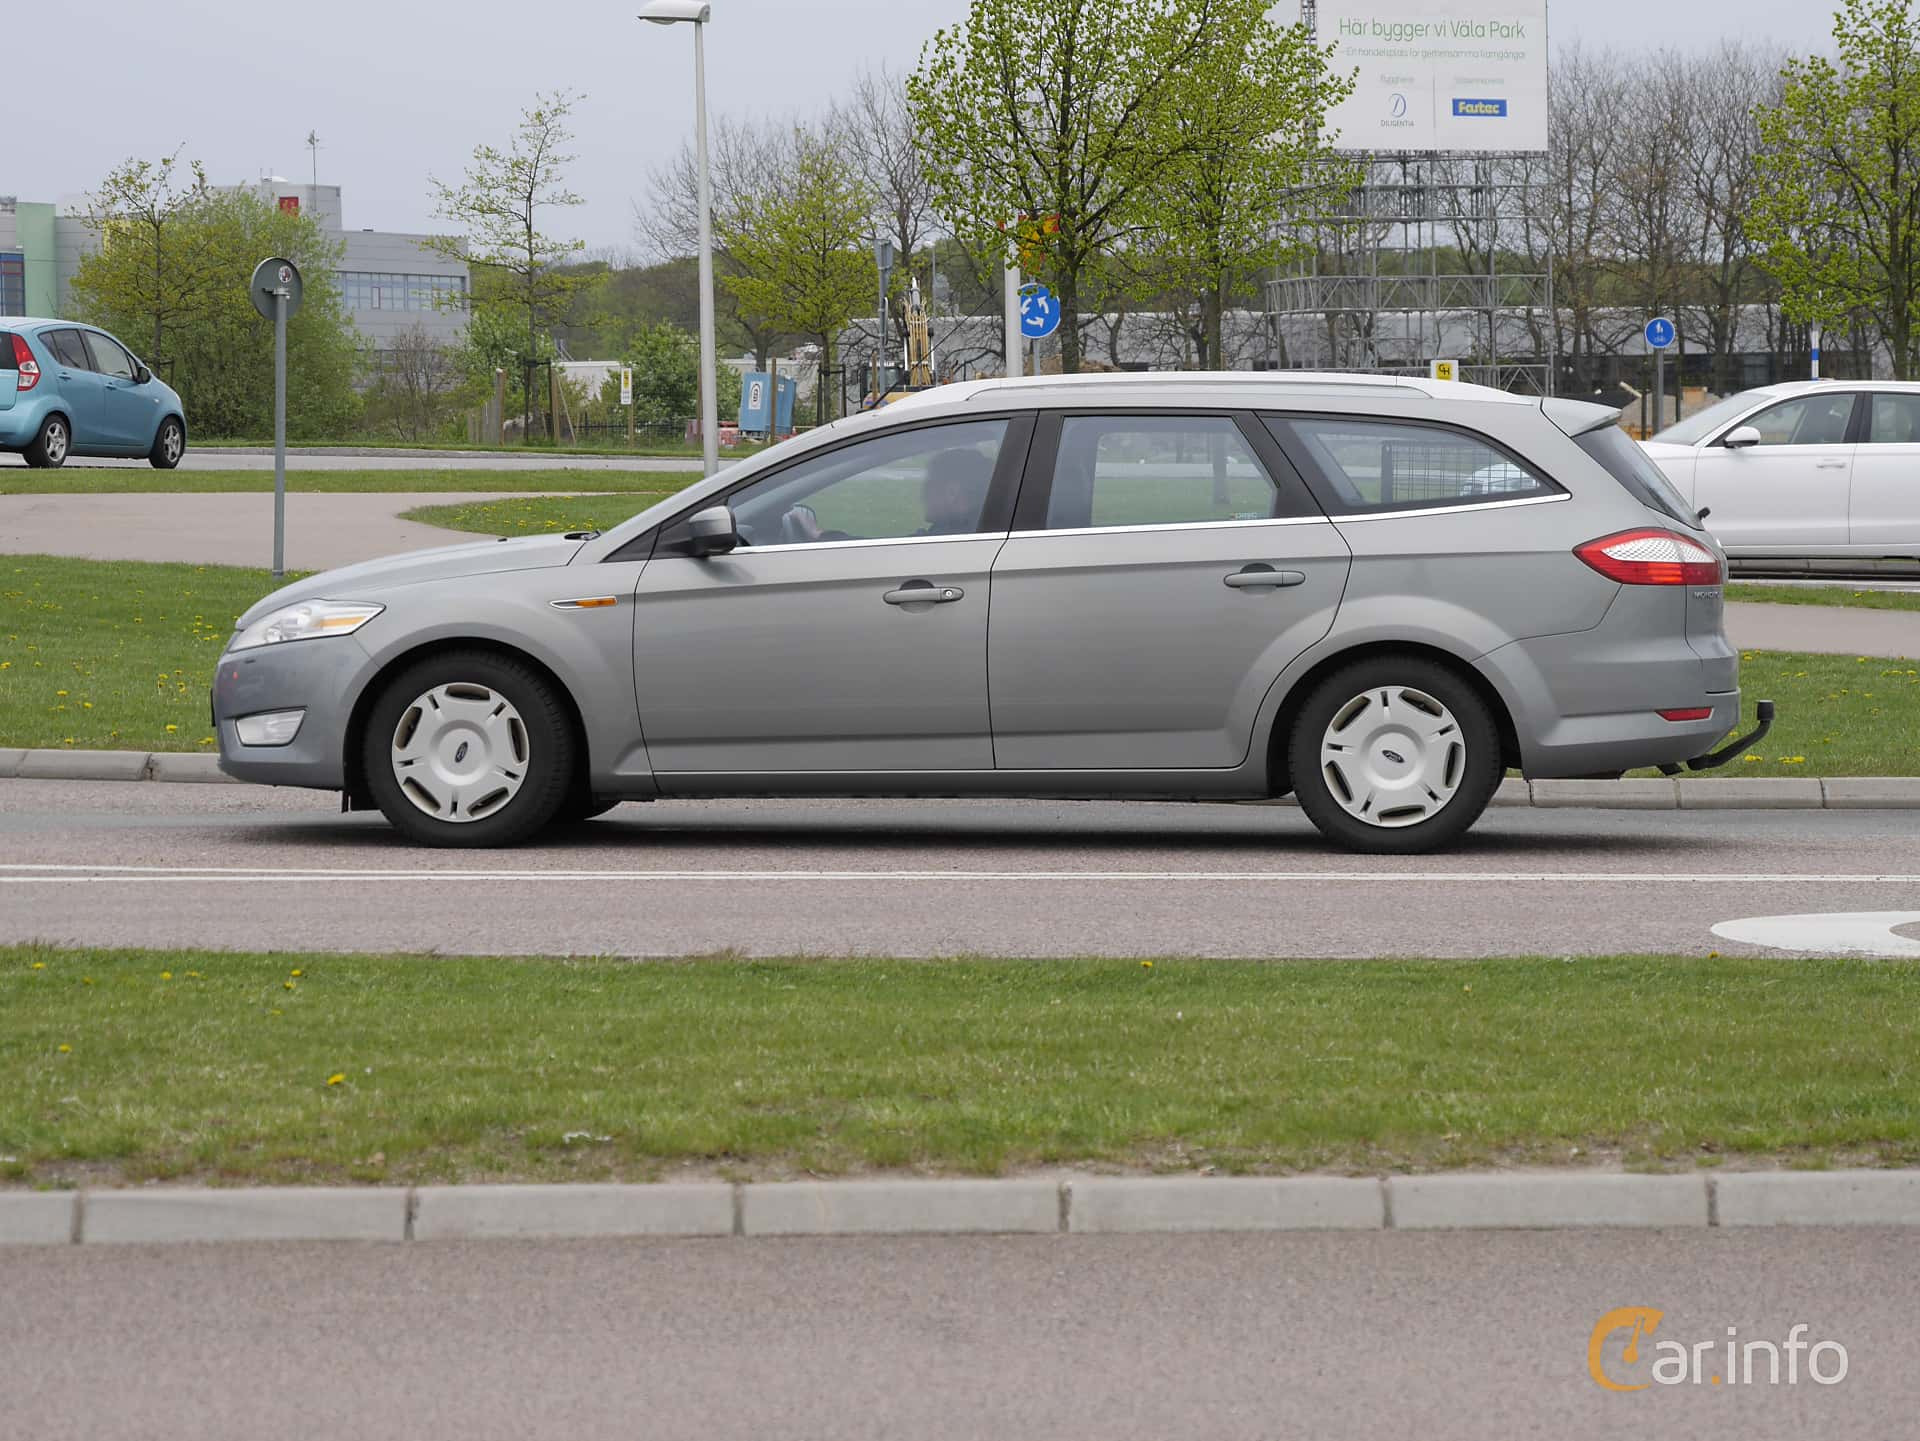 Ford Mondeo 2 3 generation BA7, Automatic, 6-speed